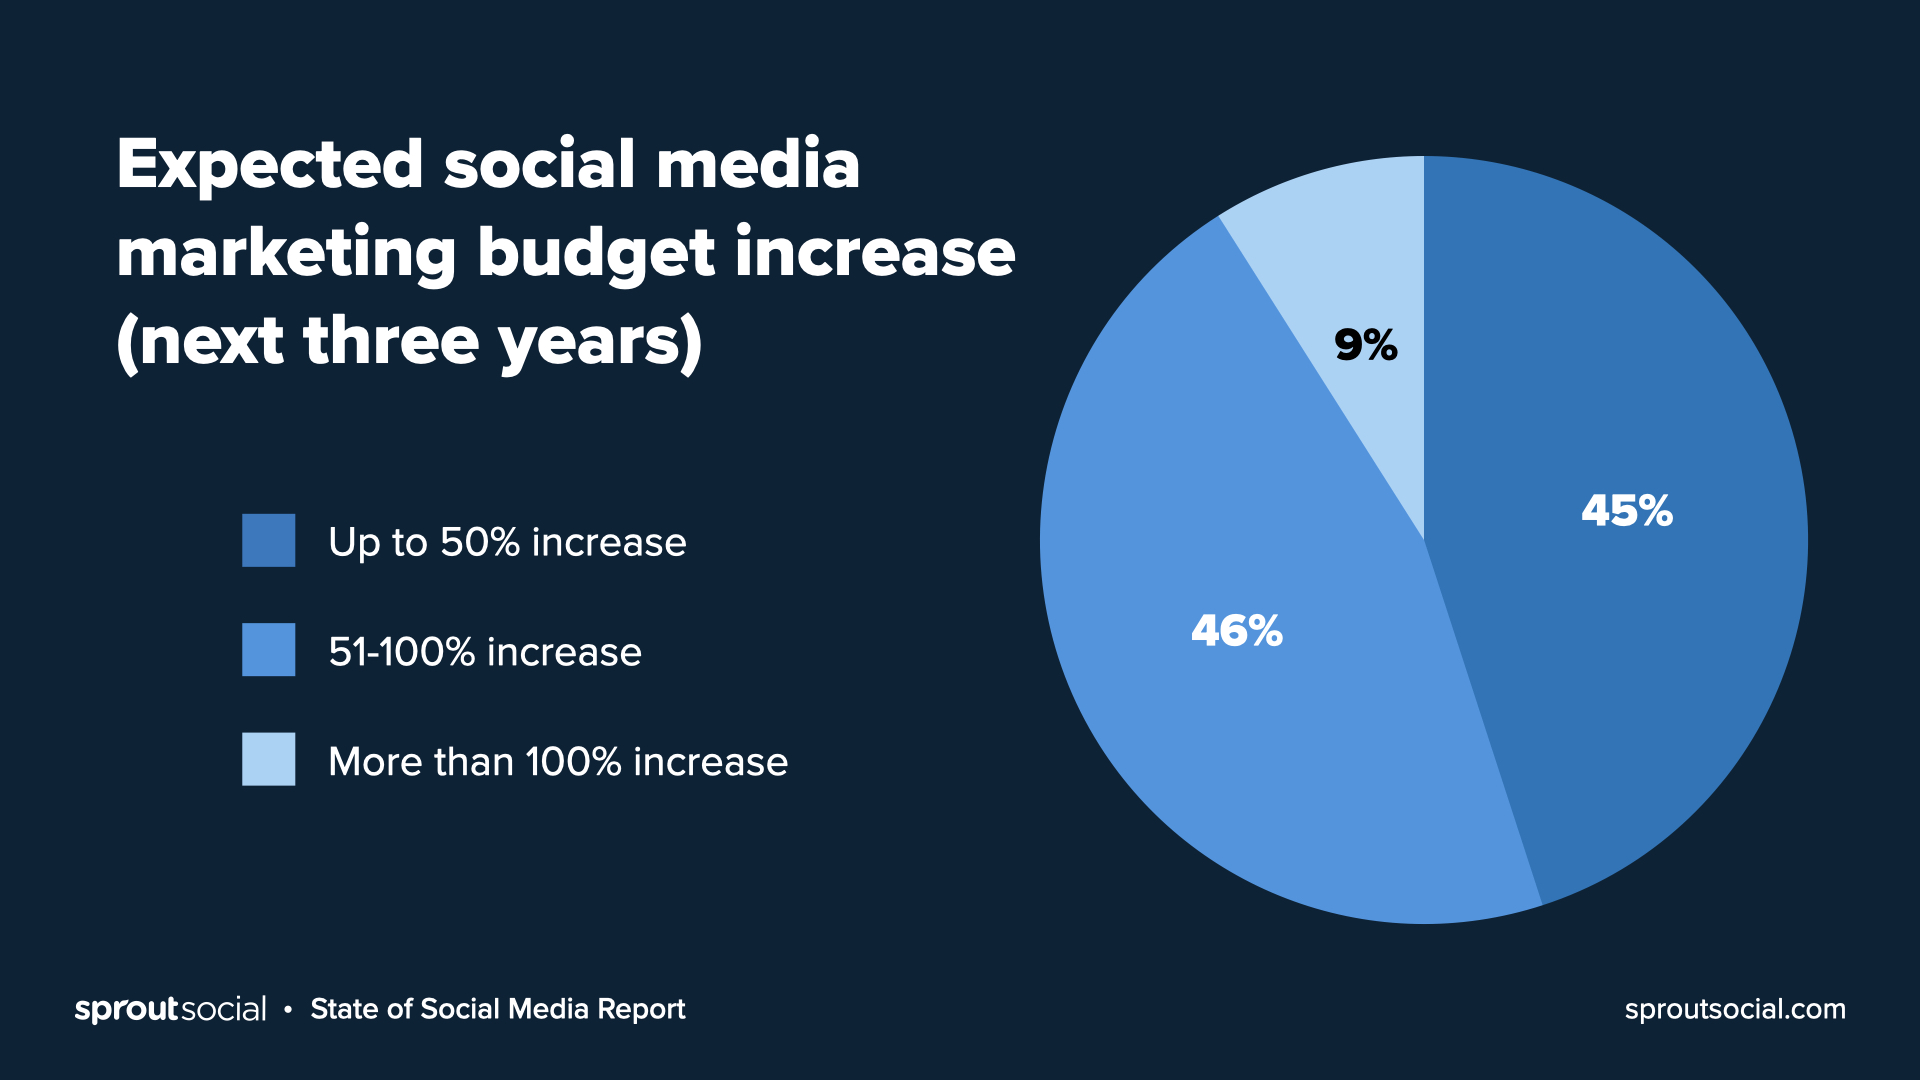 Expected changes in social media budgets